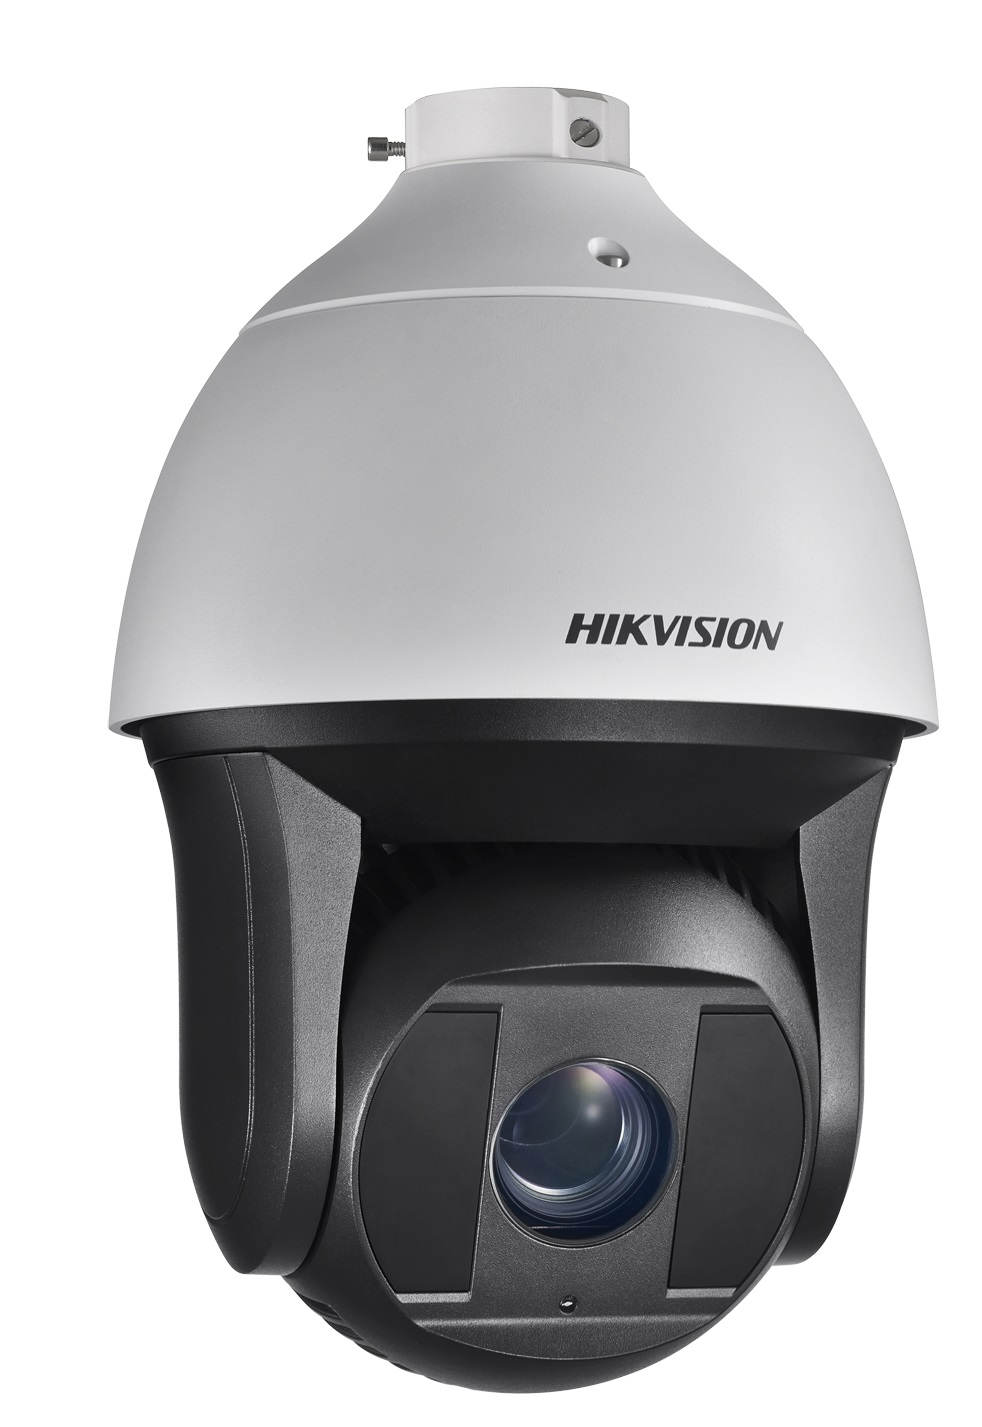 HIKVISION DS-2DF8225IX-AEL 2MP PTZ with 25X zoom, smart tracking, smart IR